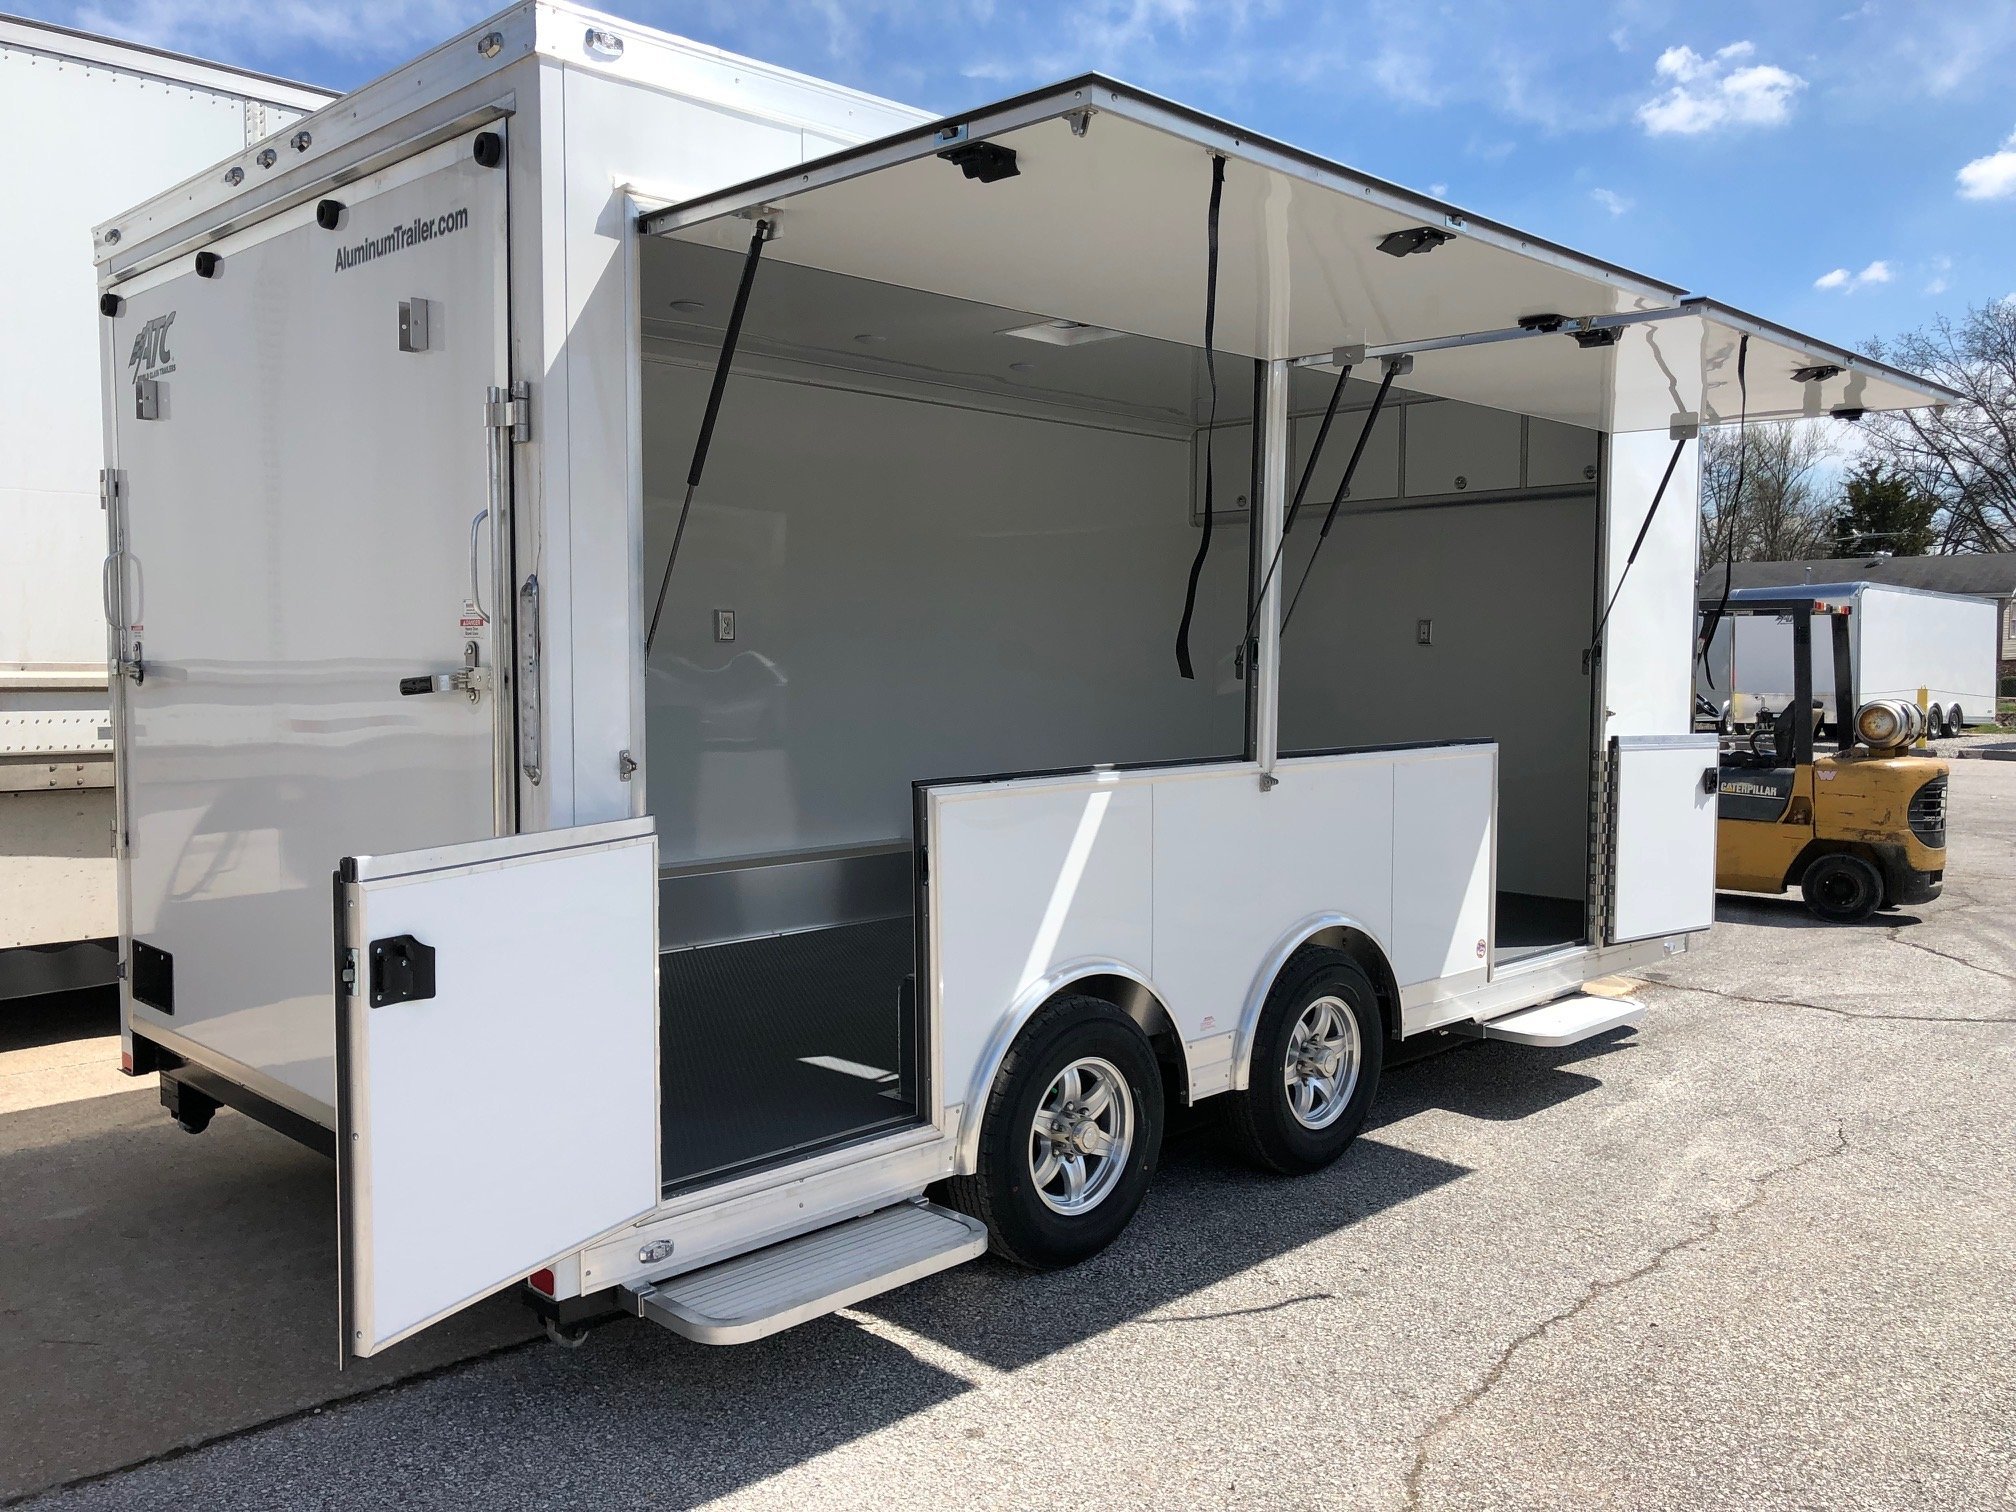 In-Stock $19,995 Product Display Trailer